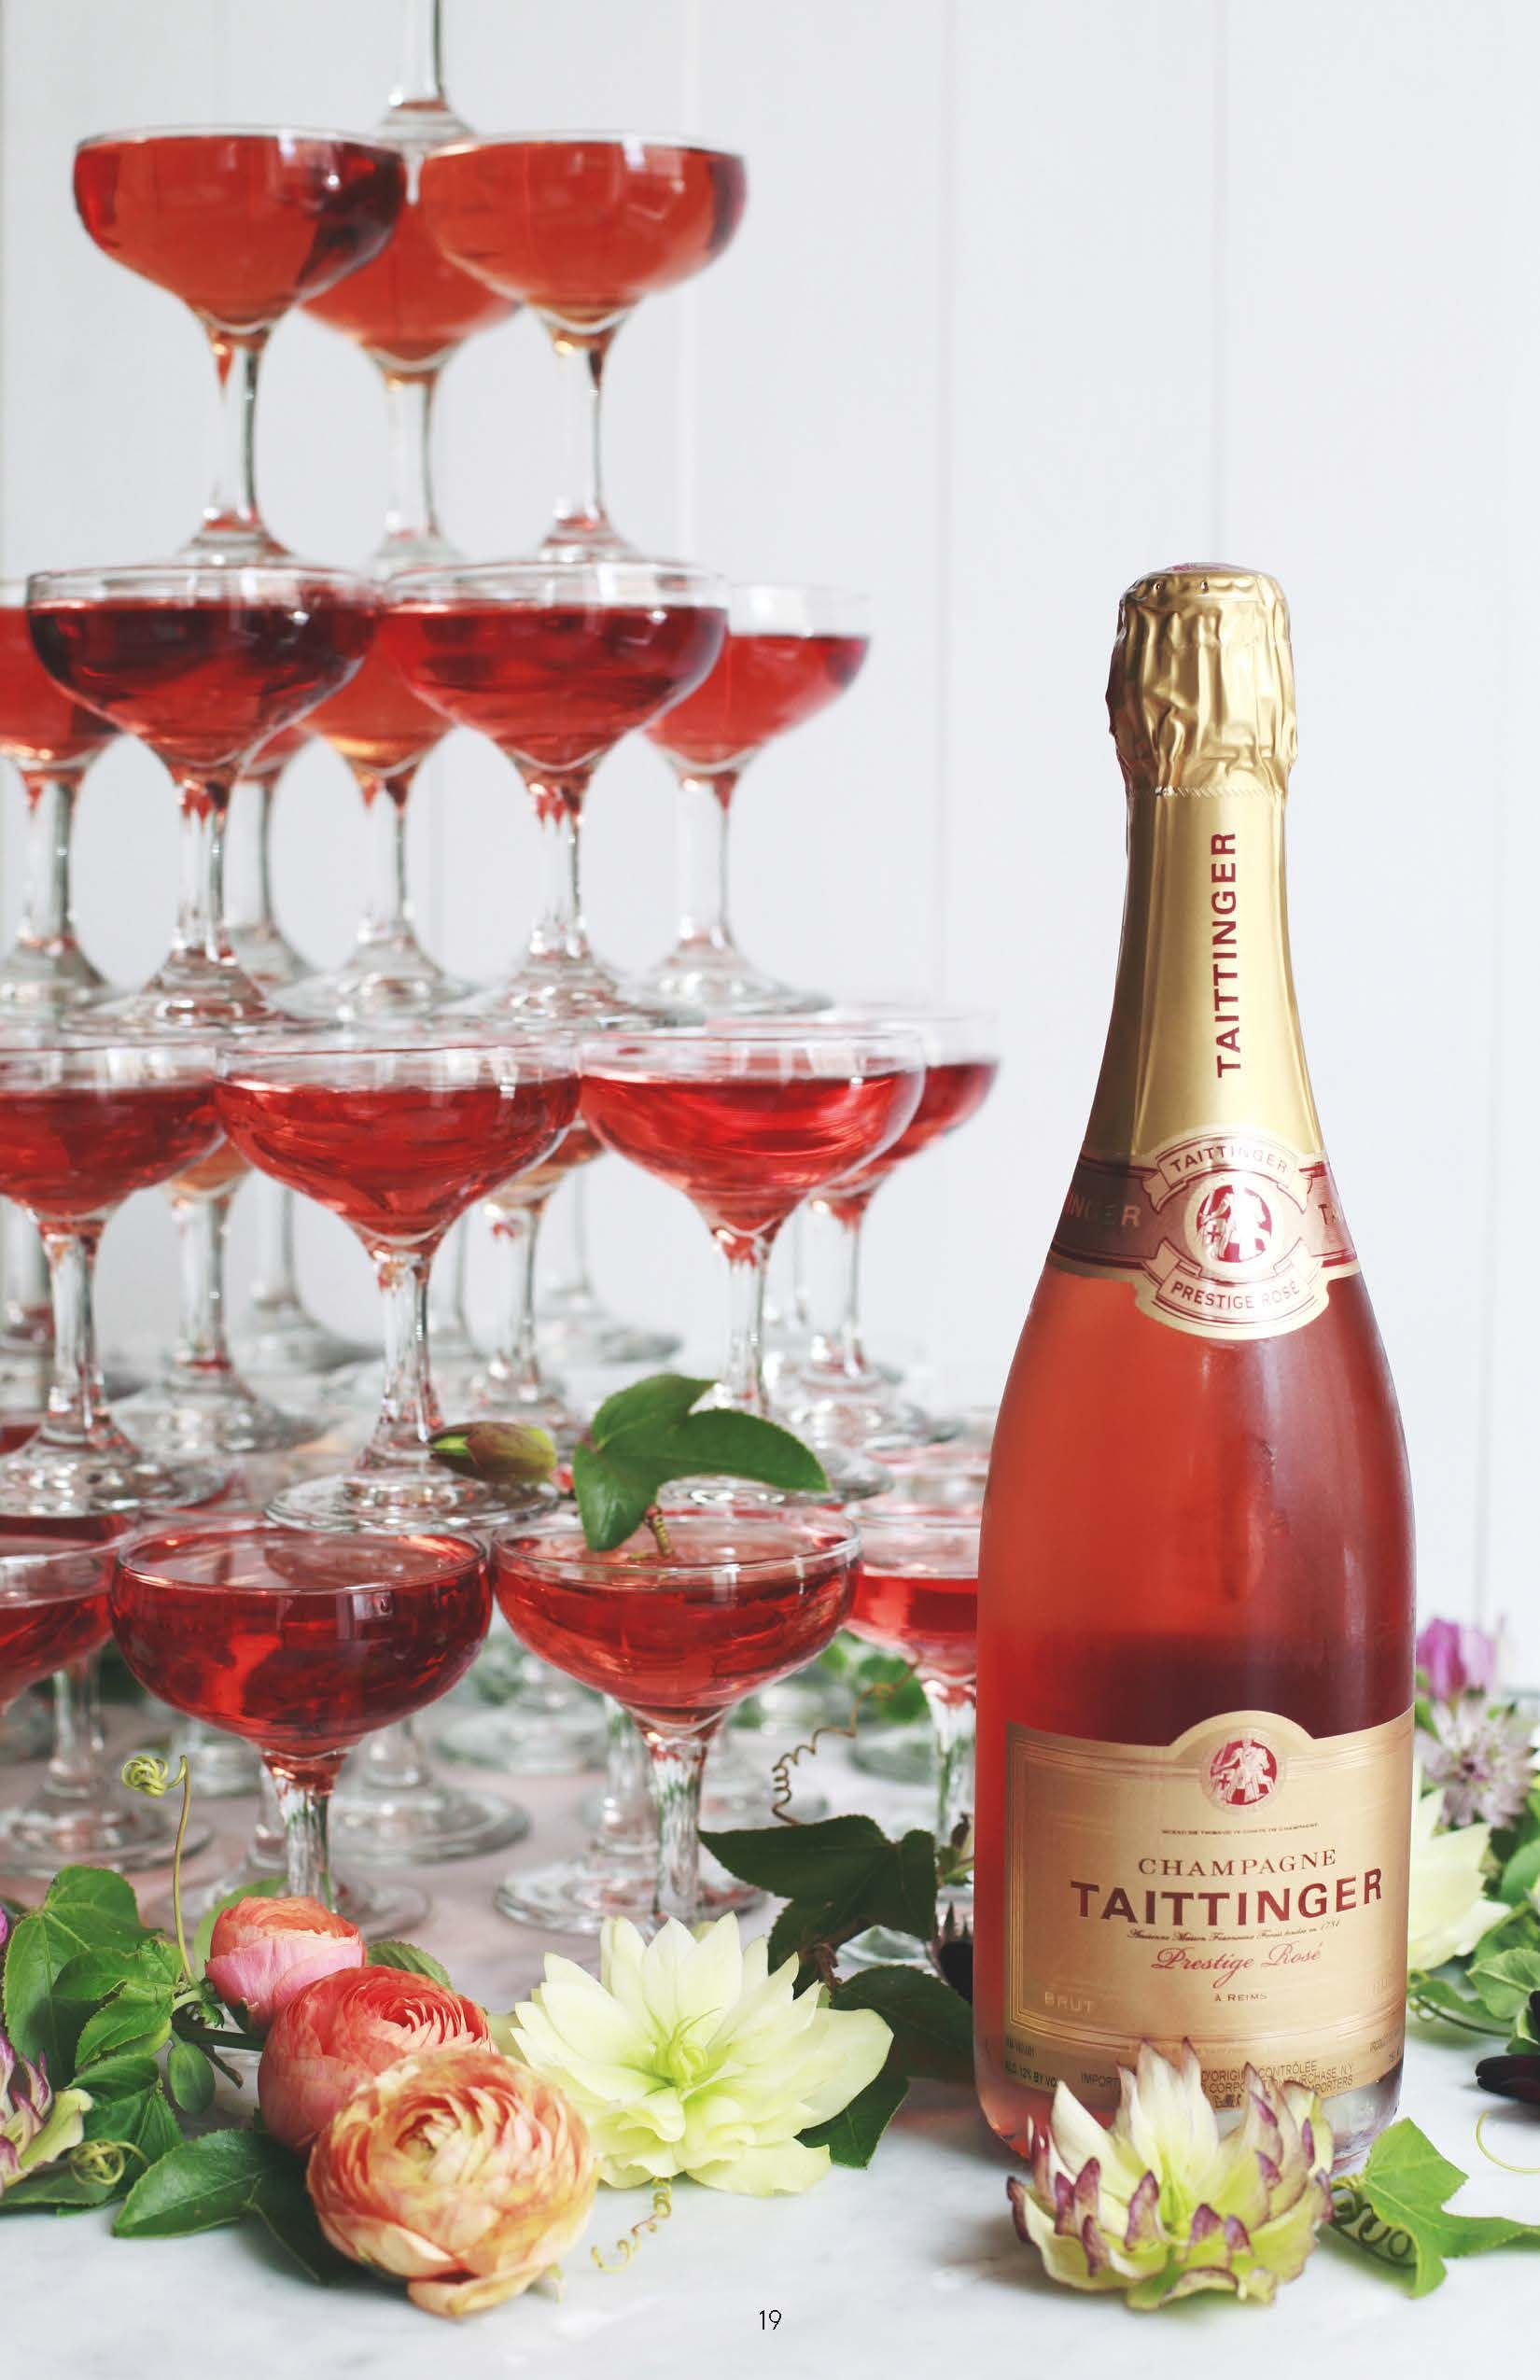 Taittinger Champagne Towers Are A New Way To Think About Wedding Centerpieces Champagne Tower Wine Tower Champagne